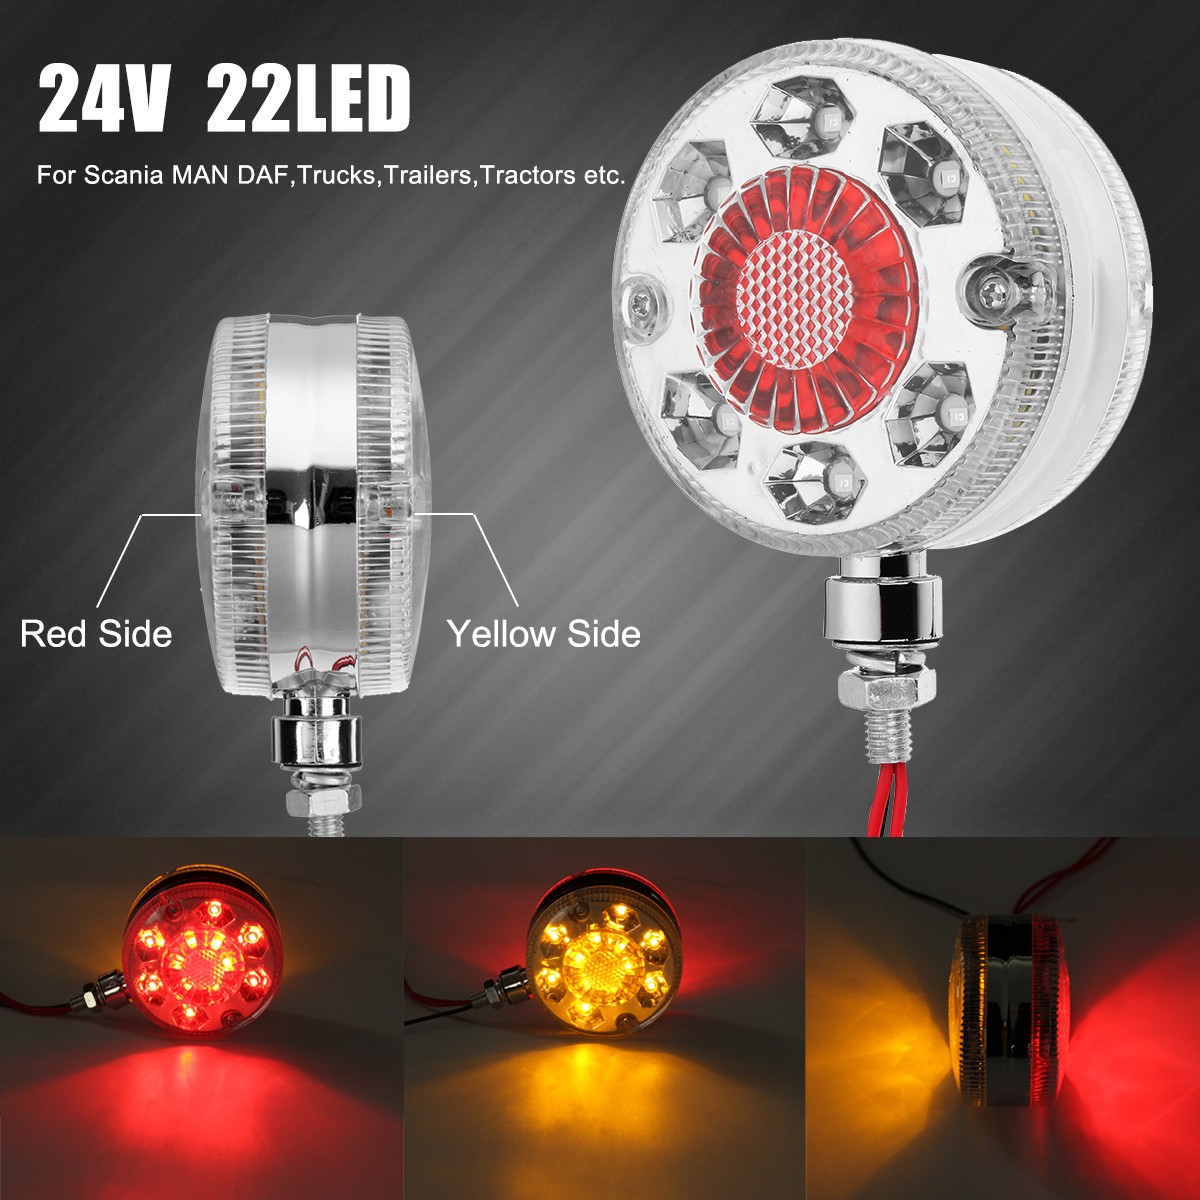 4PCS of 24 LED Double Face Light 3 Round Red//Amber// White with Clear Lens SEMI TRUCK FENDER